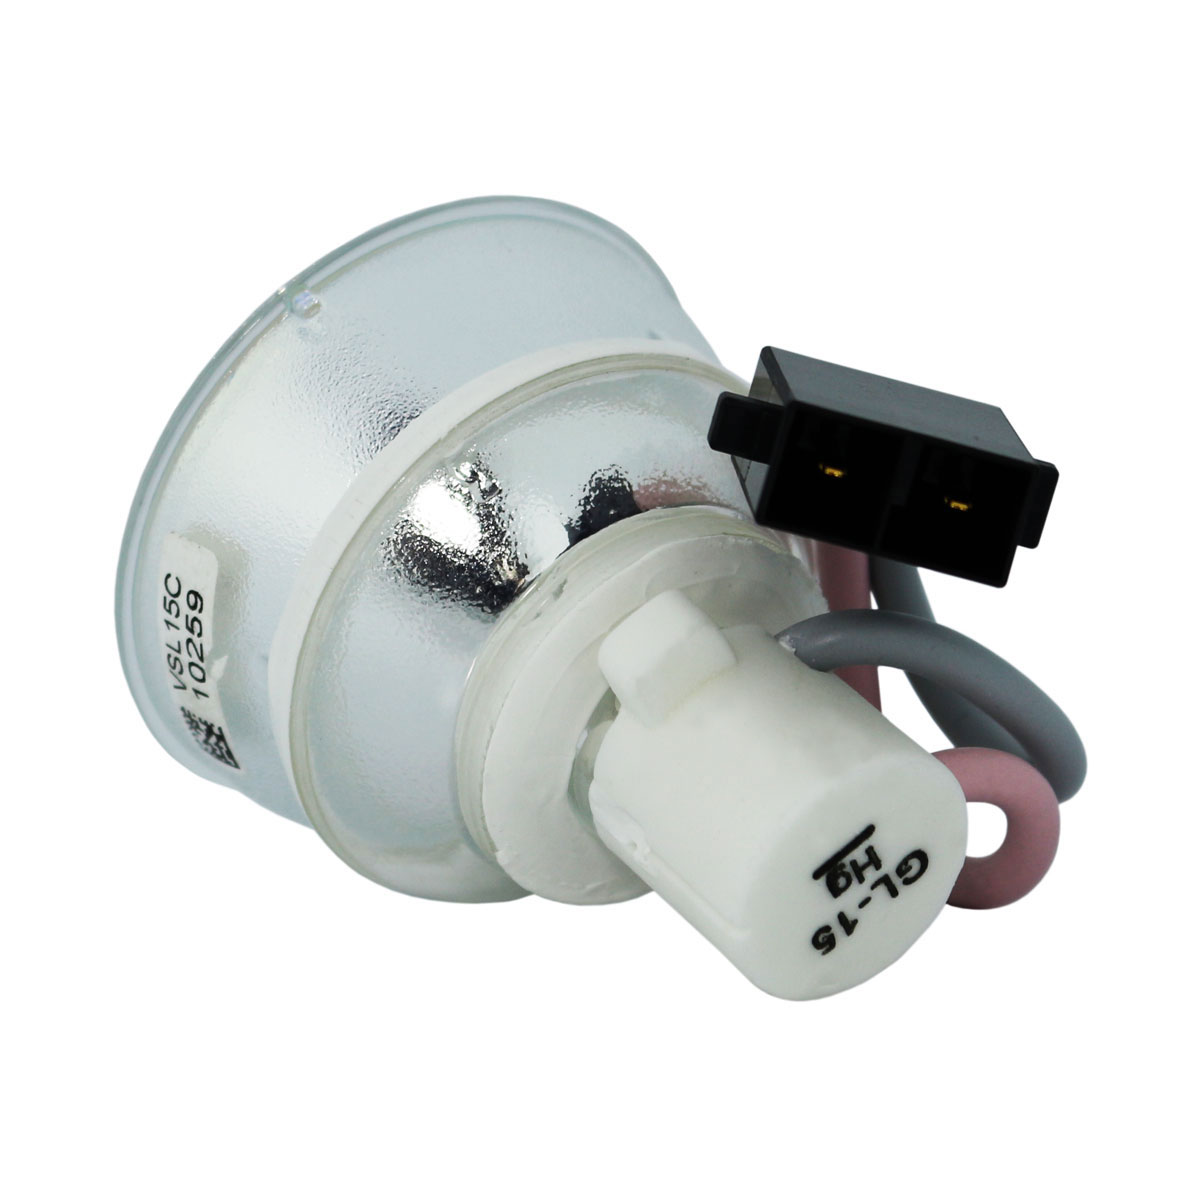 Original Phoenix Projector Lamp Replacement for Toshiba TDP-EX20 (Bulb Only) - image 4 of 5